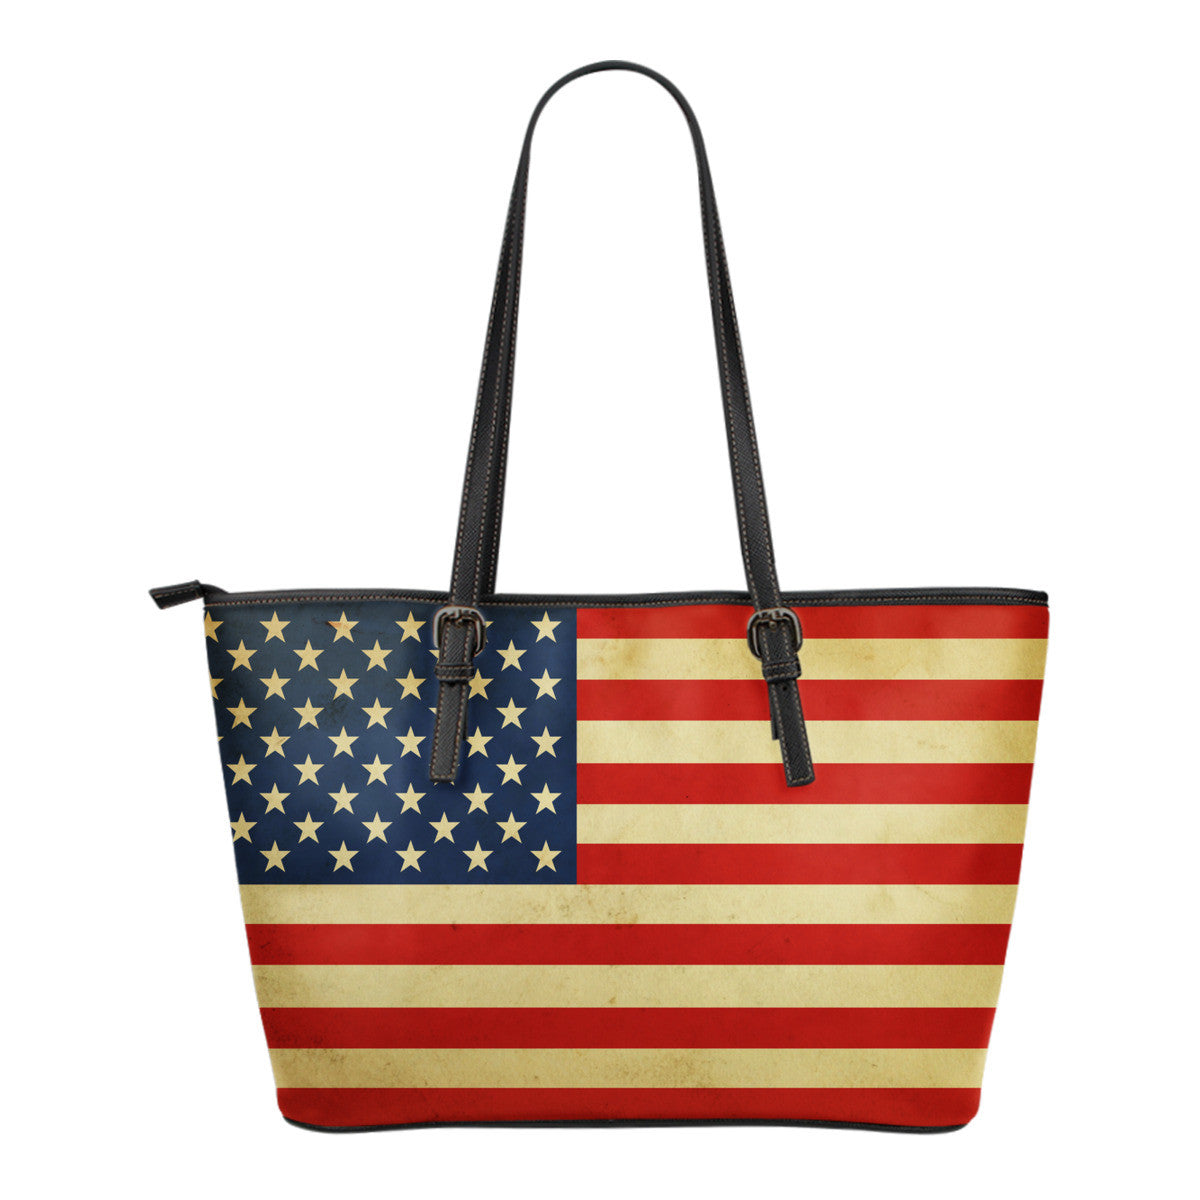 Patriotic Leather Tote Bag